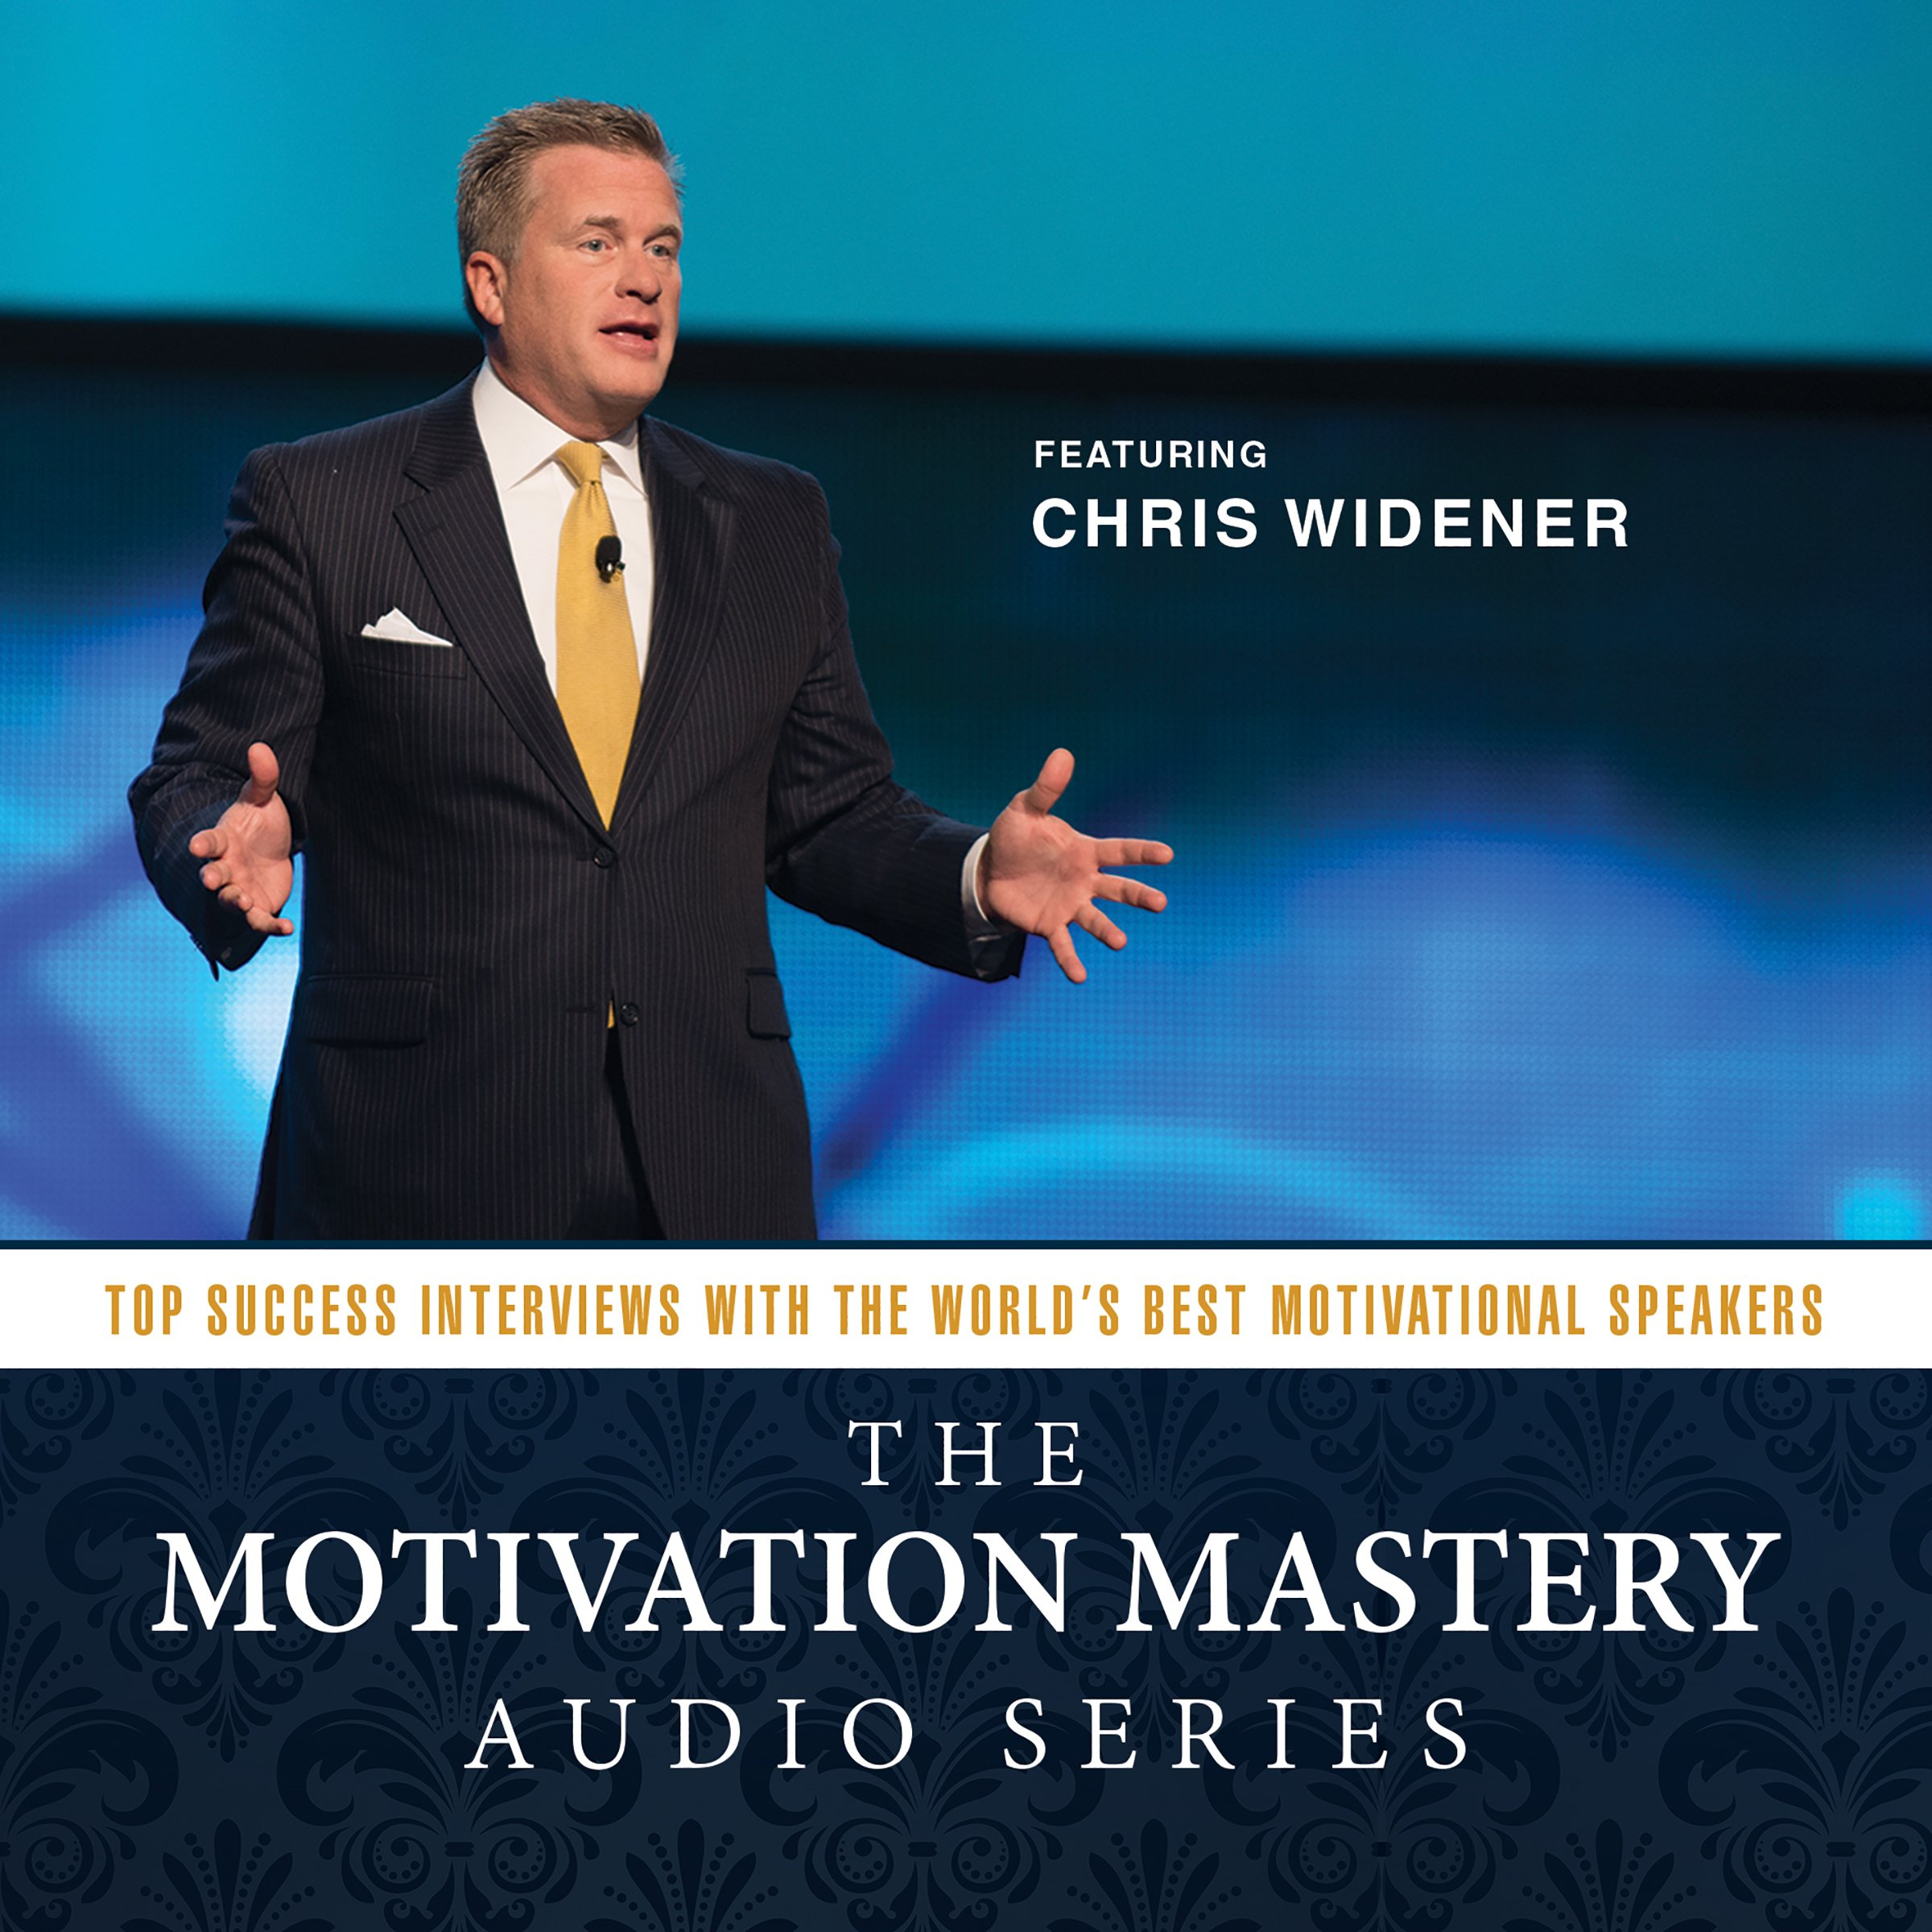 the motivation mastery audio series top success interviews the motivation mastery audio series top success interviews the world s best motivational speakers made for success chris widener